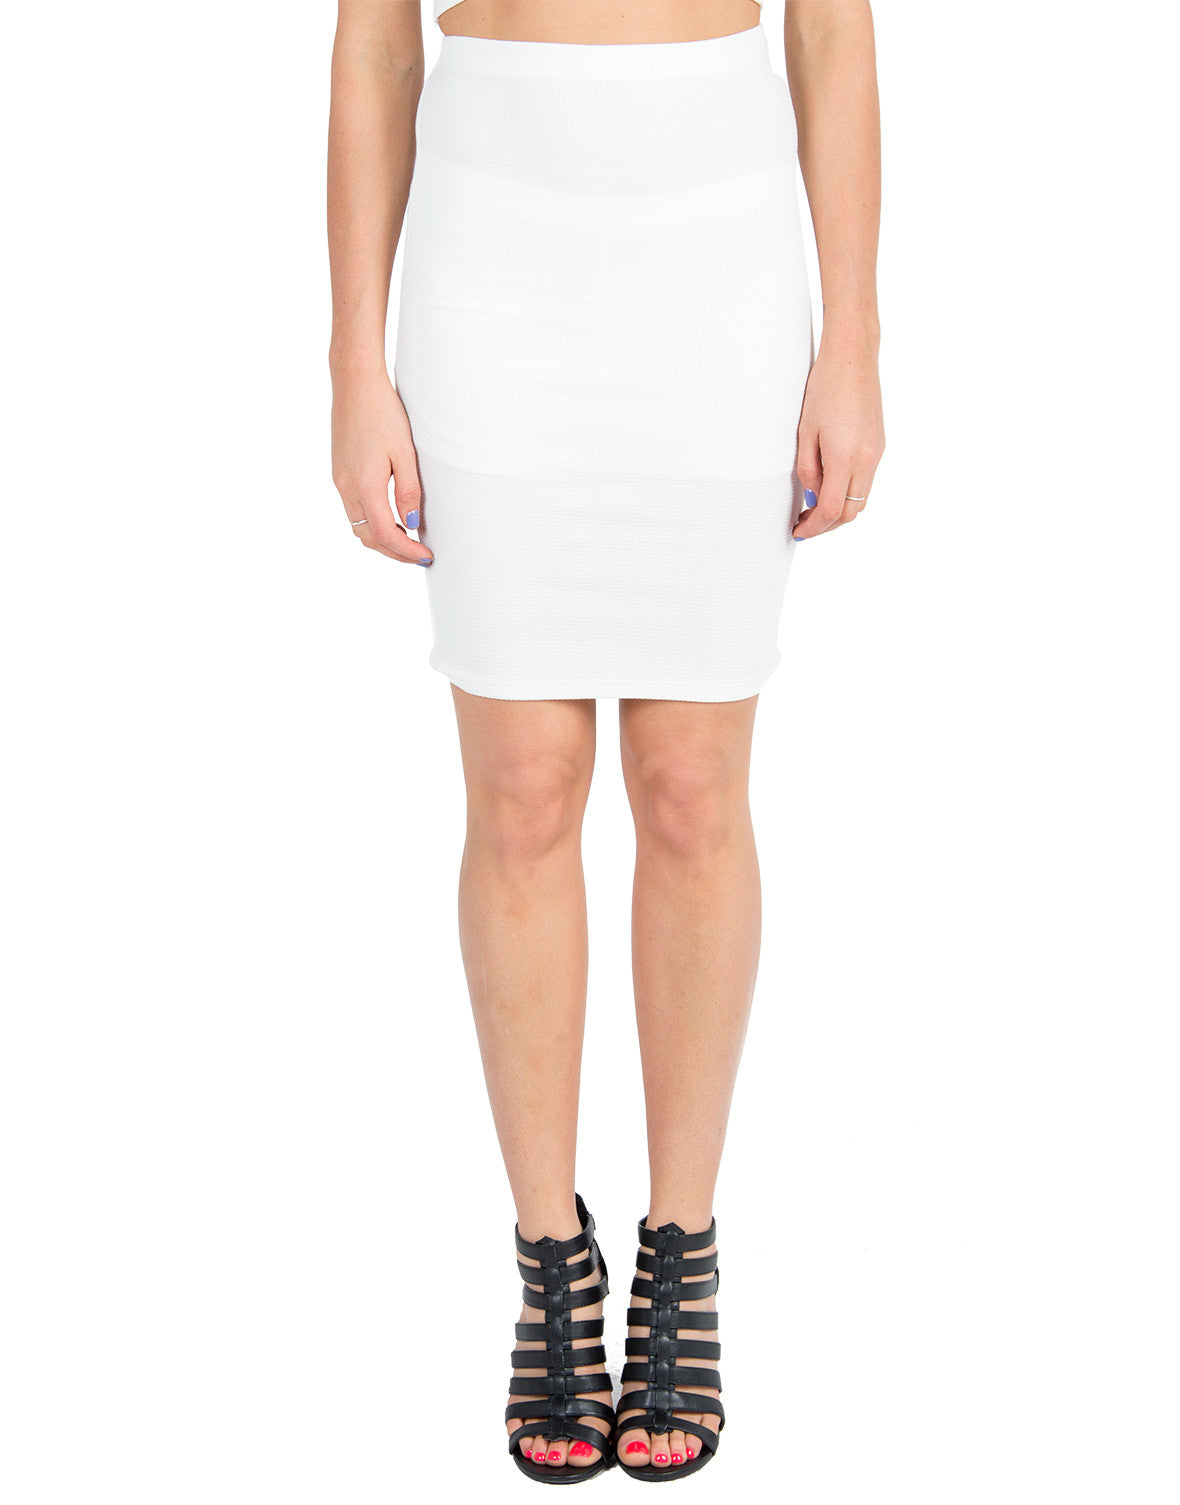 Textured Pencil Skirt - White